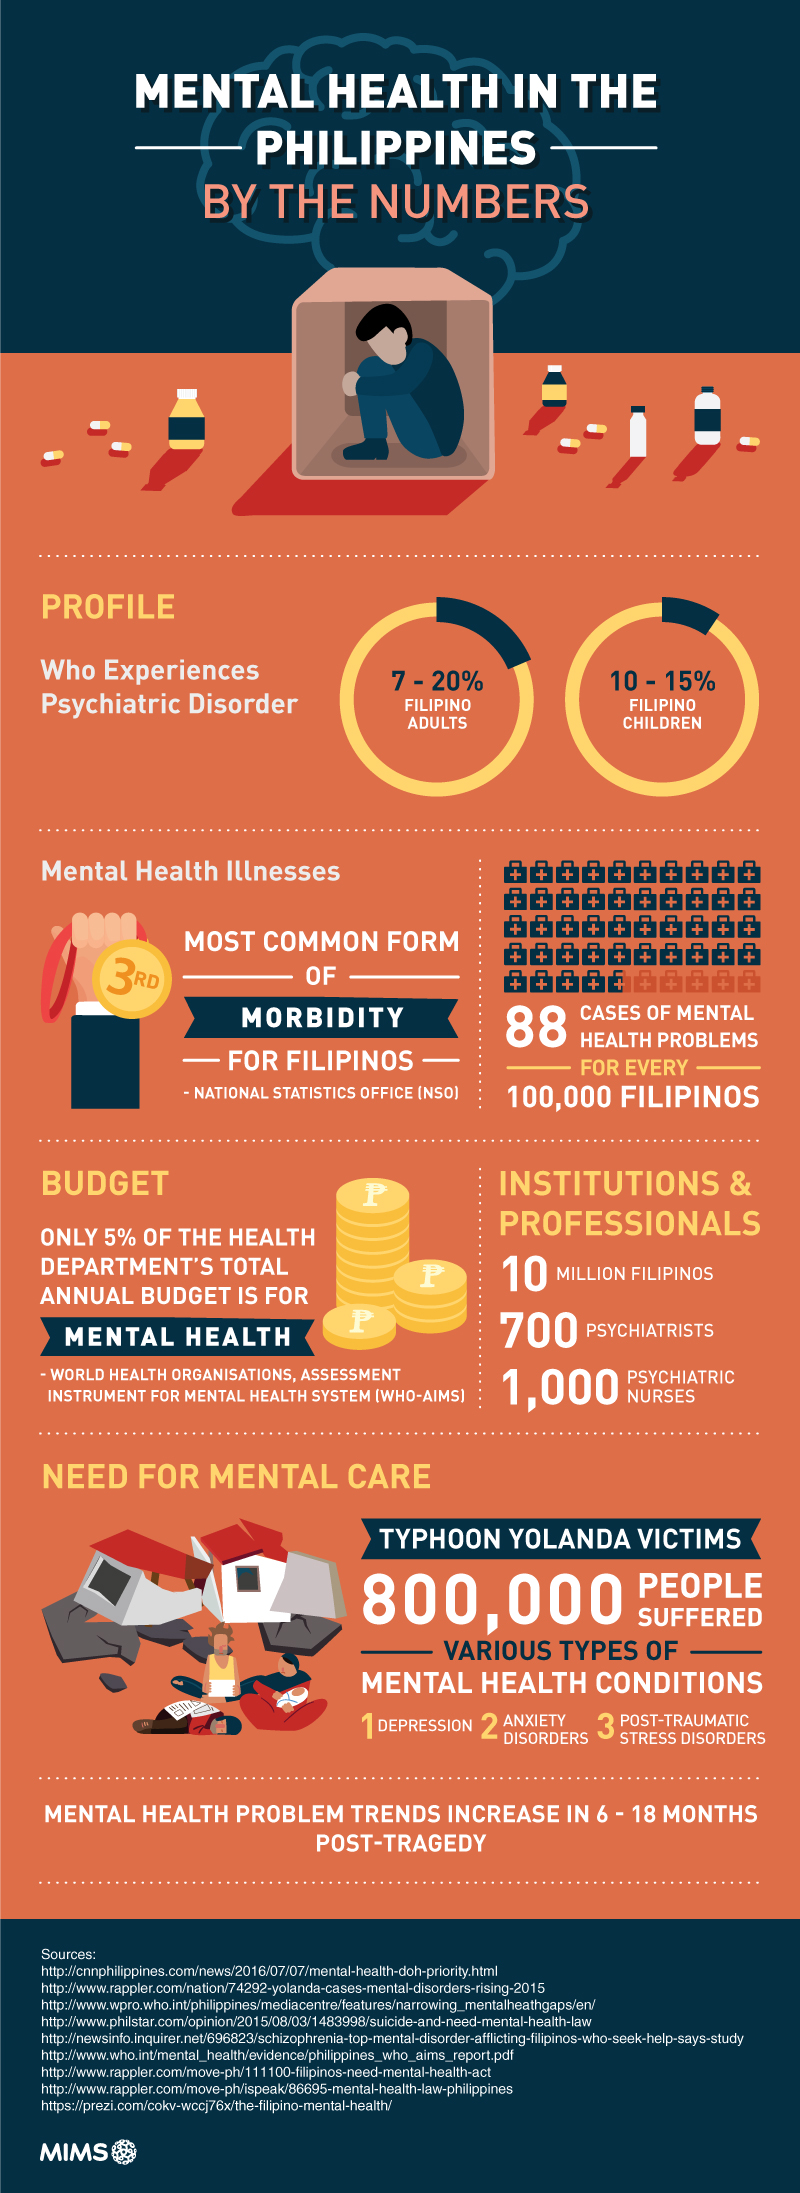 Mental Health in the Philippines: By the numbers